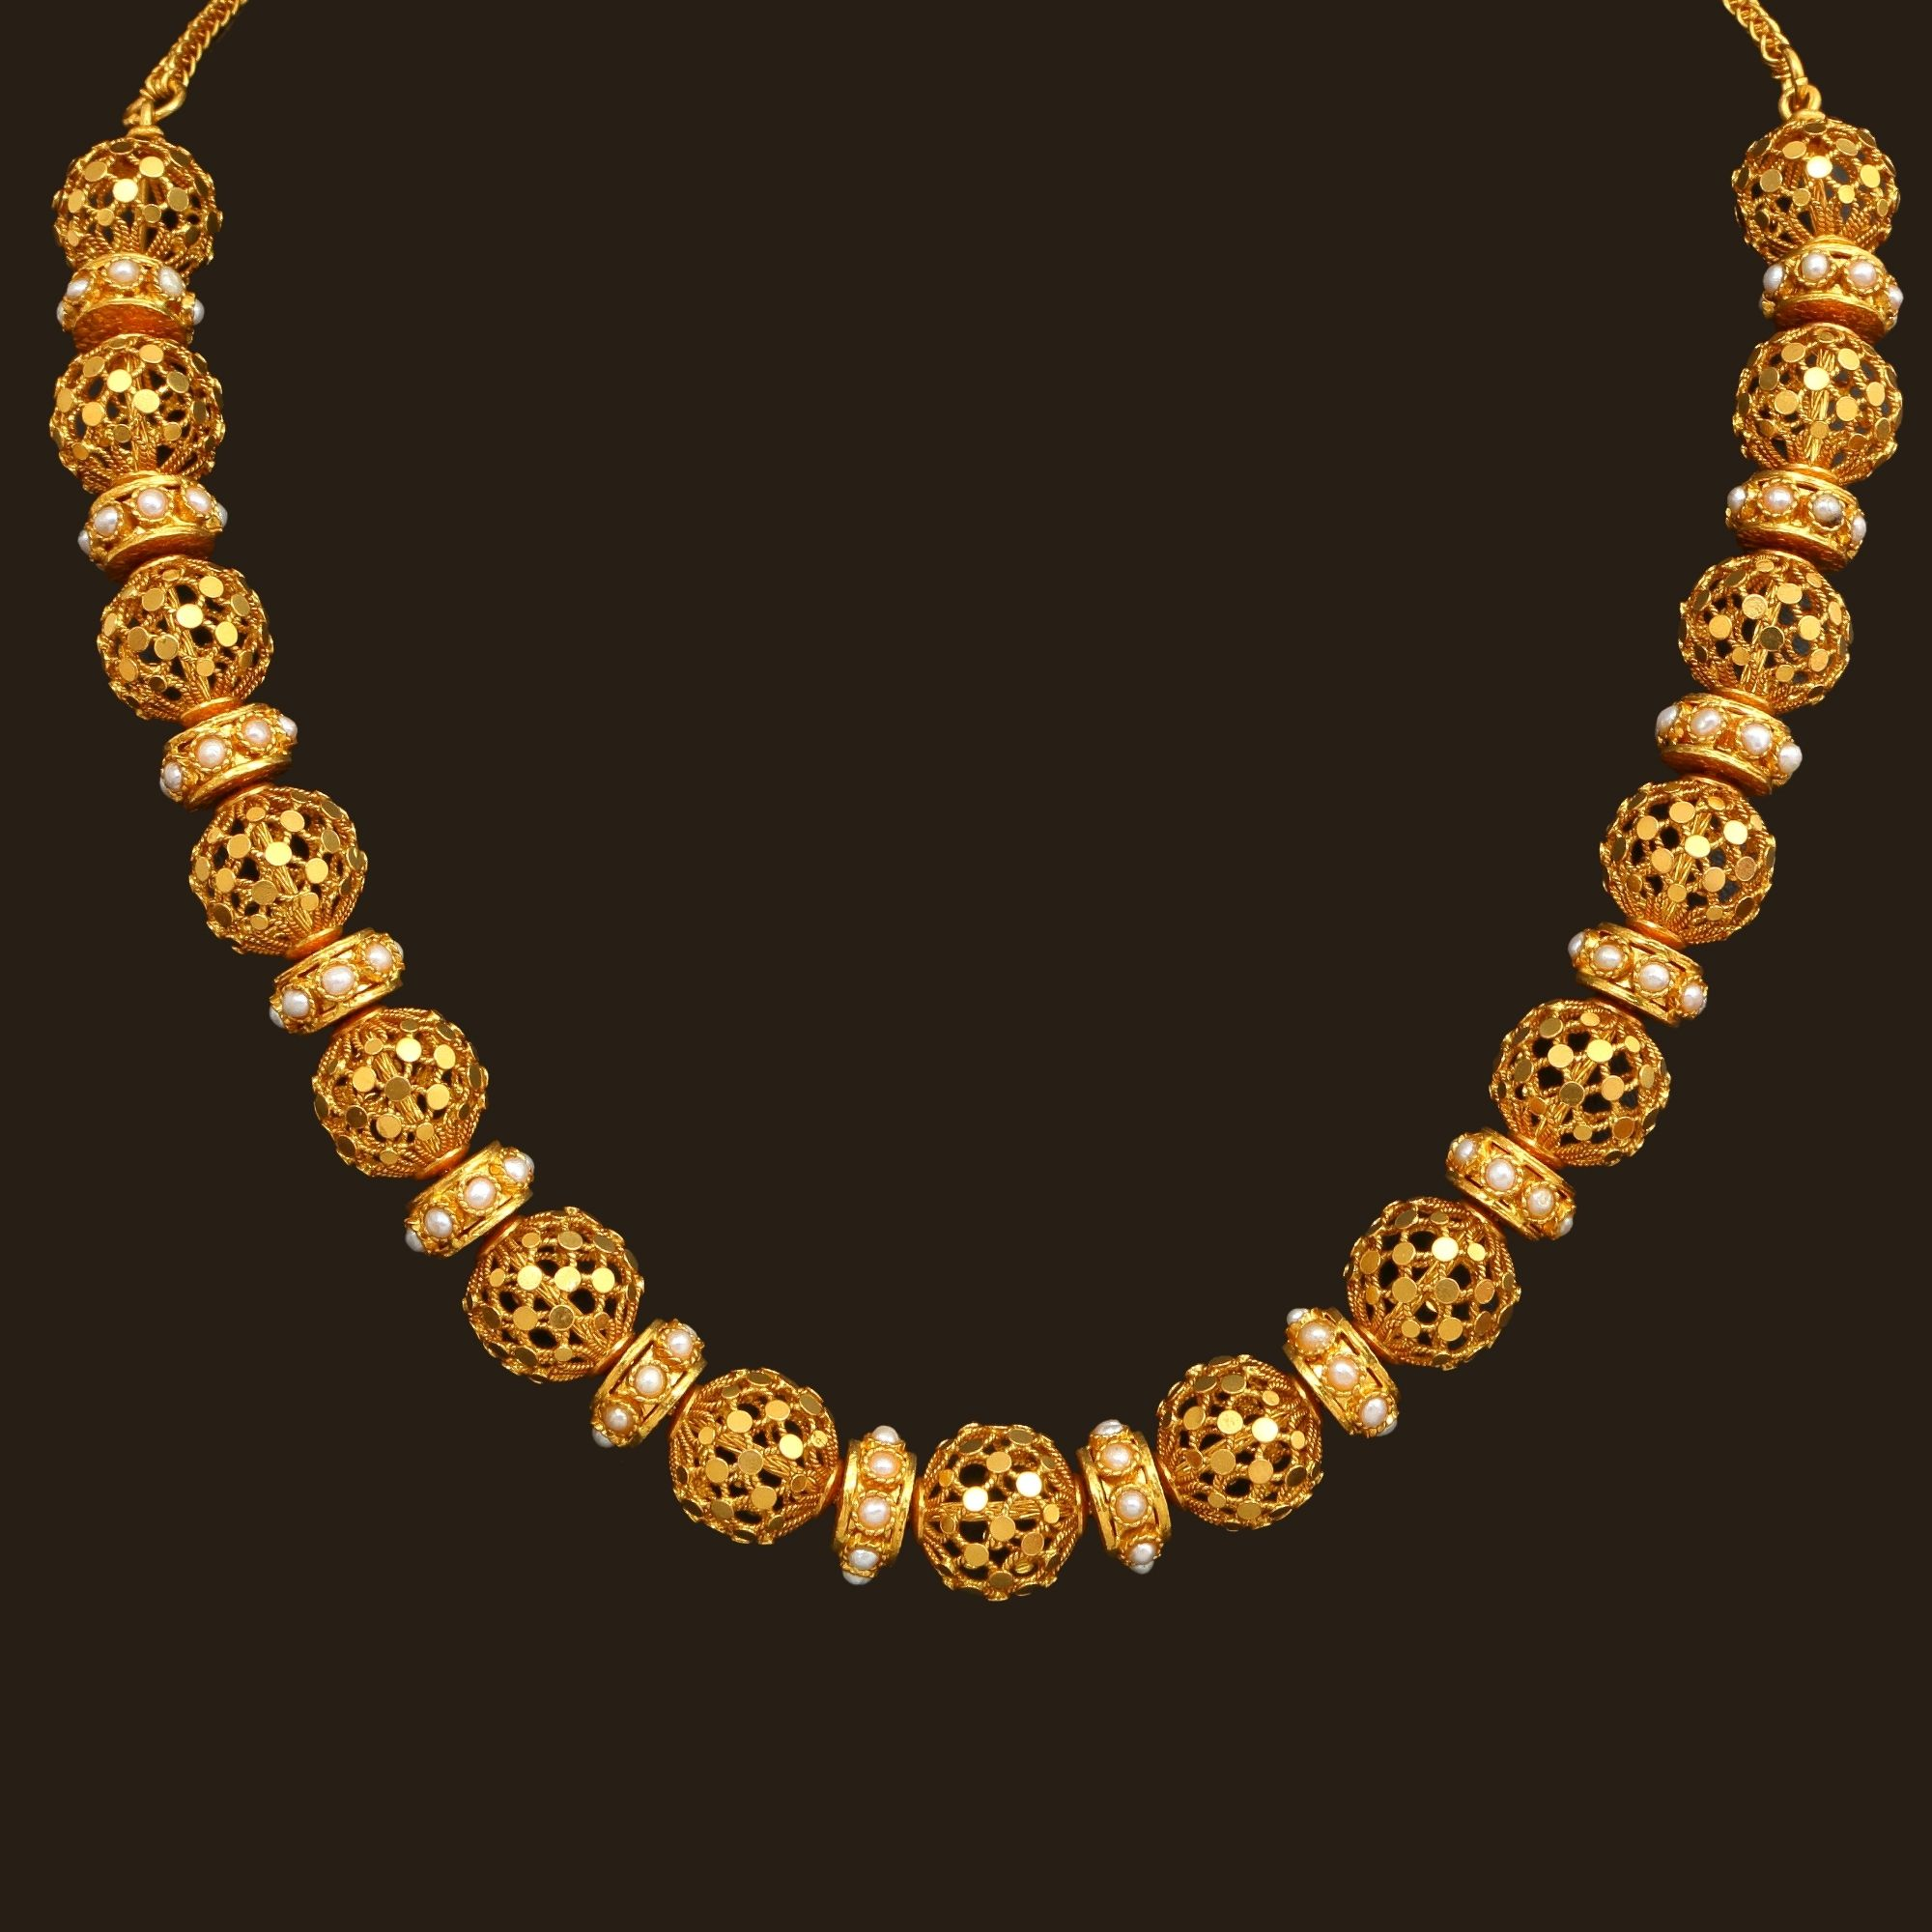 Indian Gold Jewellery Necklace Sets Google Search: Pin By Hema Rajan On Gold Diamond Gold!!